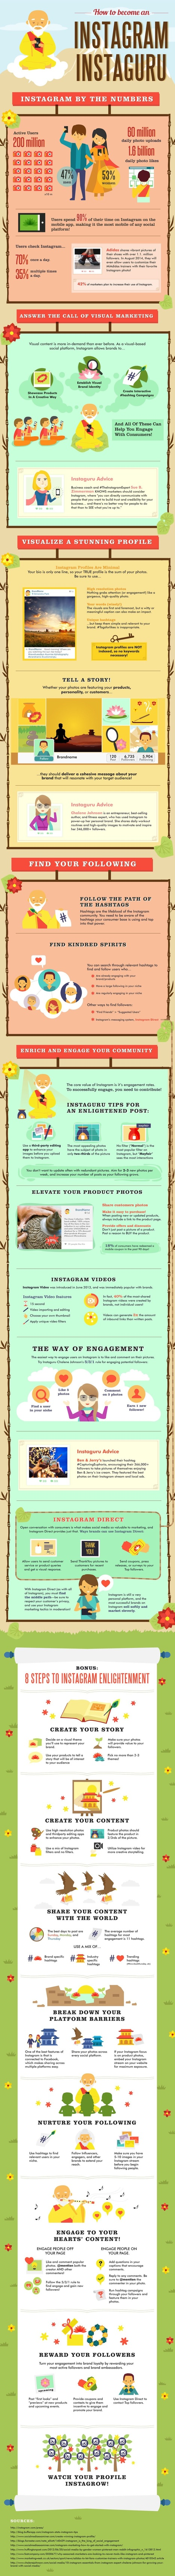 29 Tips on How to Succeed With Your Instagram Marketing #Infographic | MarketingHits | Scoop.it